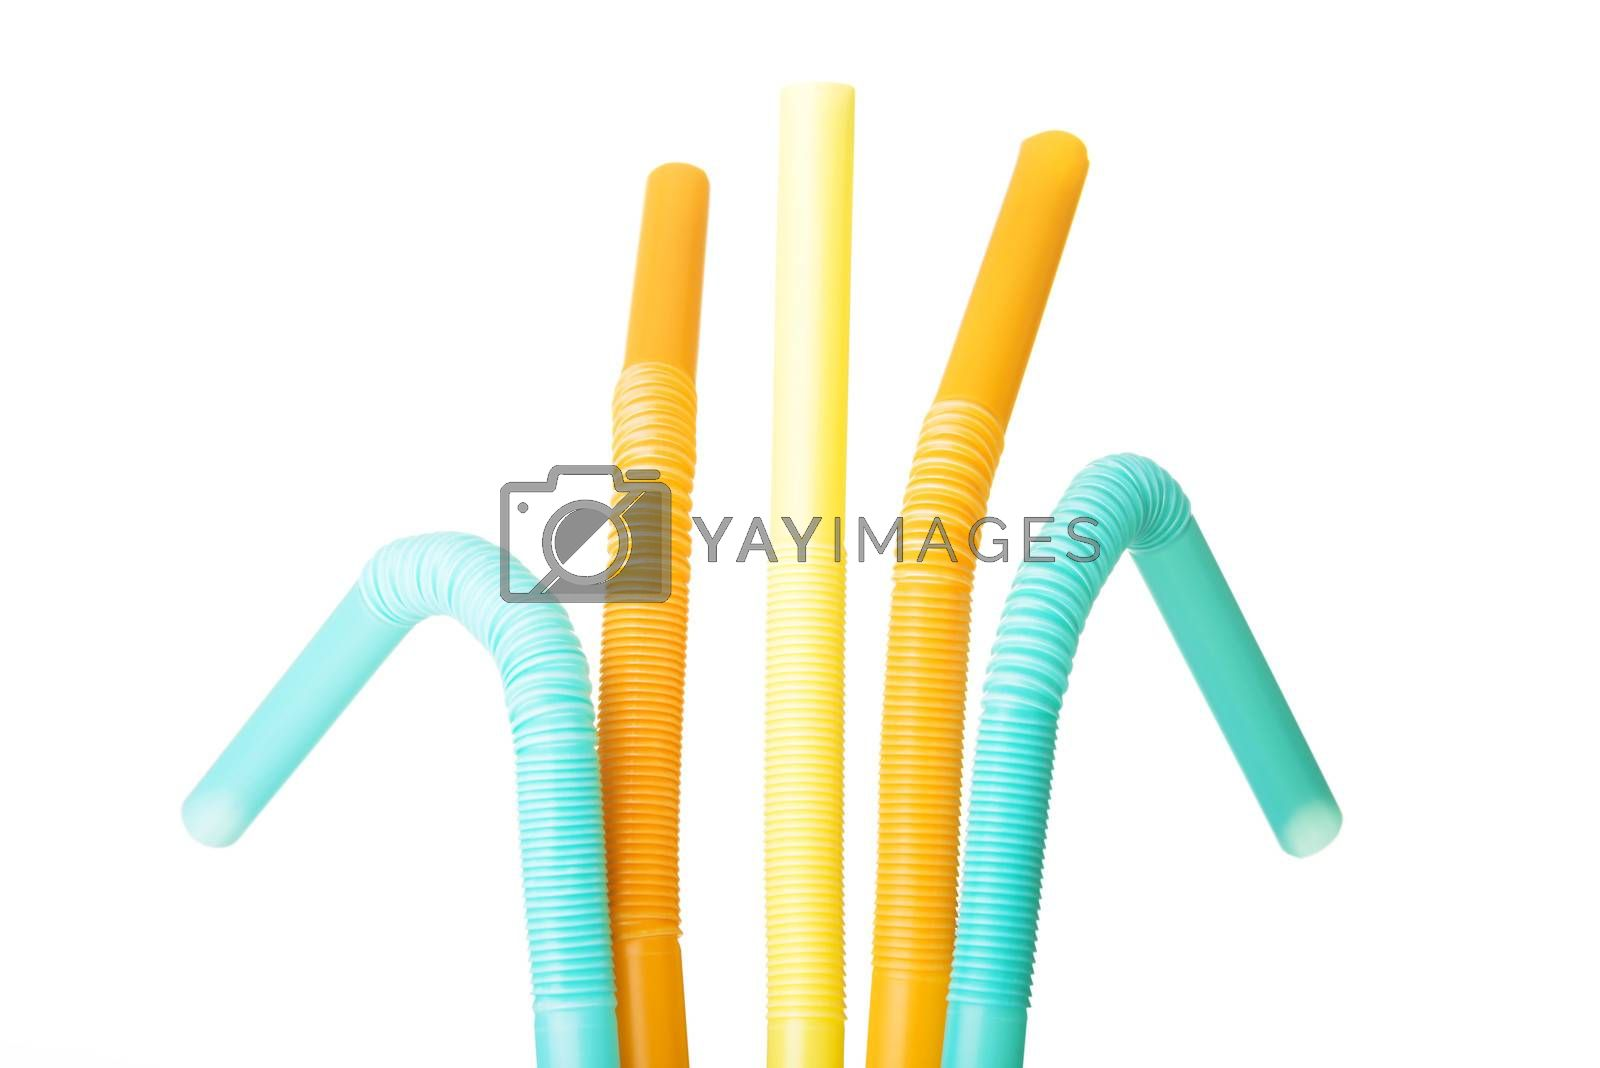 Royalty free image of Colorful straws. Vertical view. by BDS